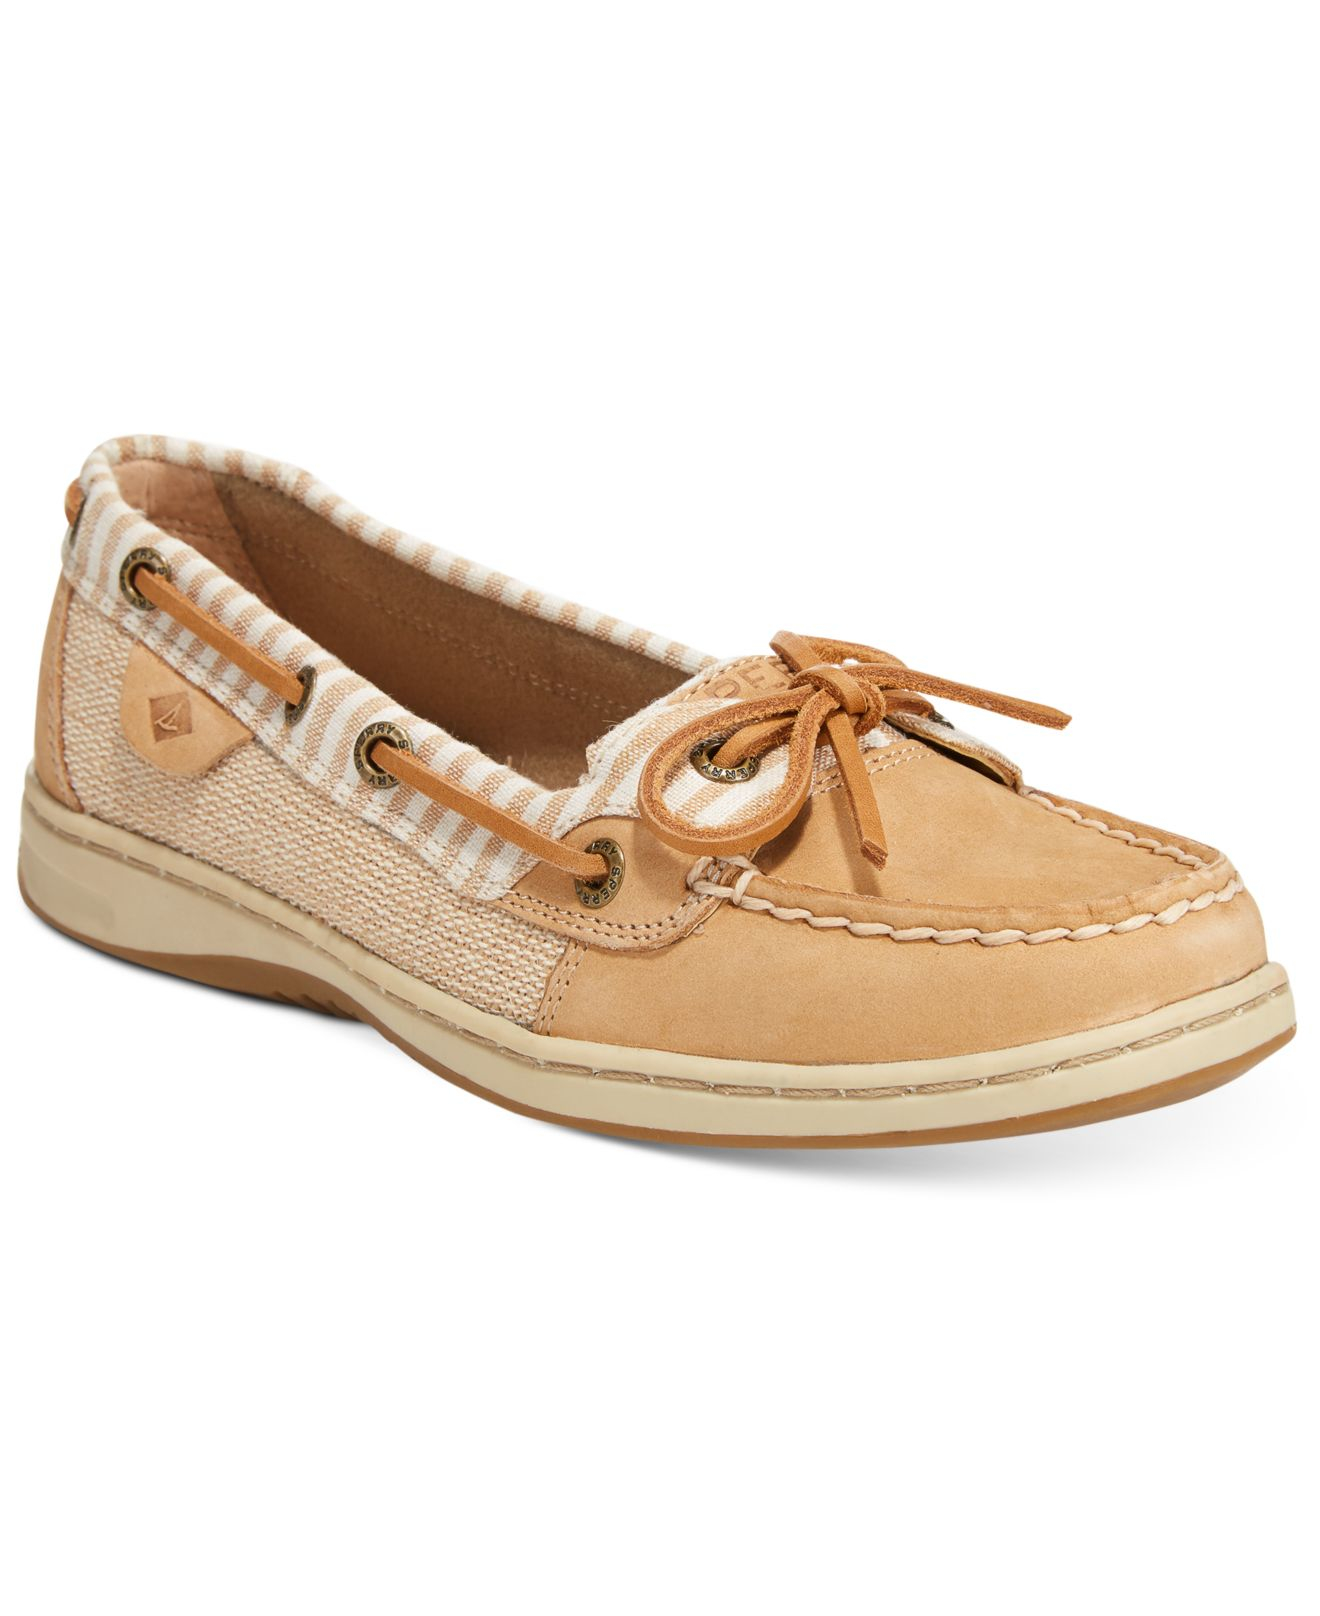 Cheap Sperry Angelfish Boat Shoe